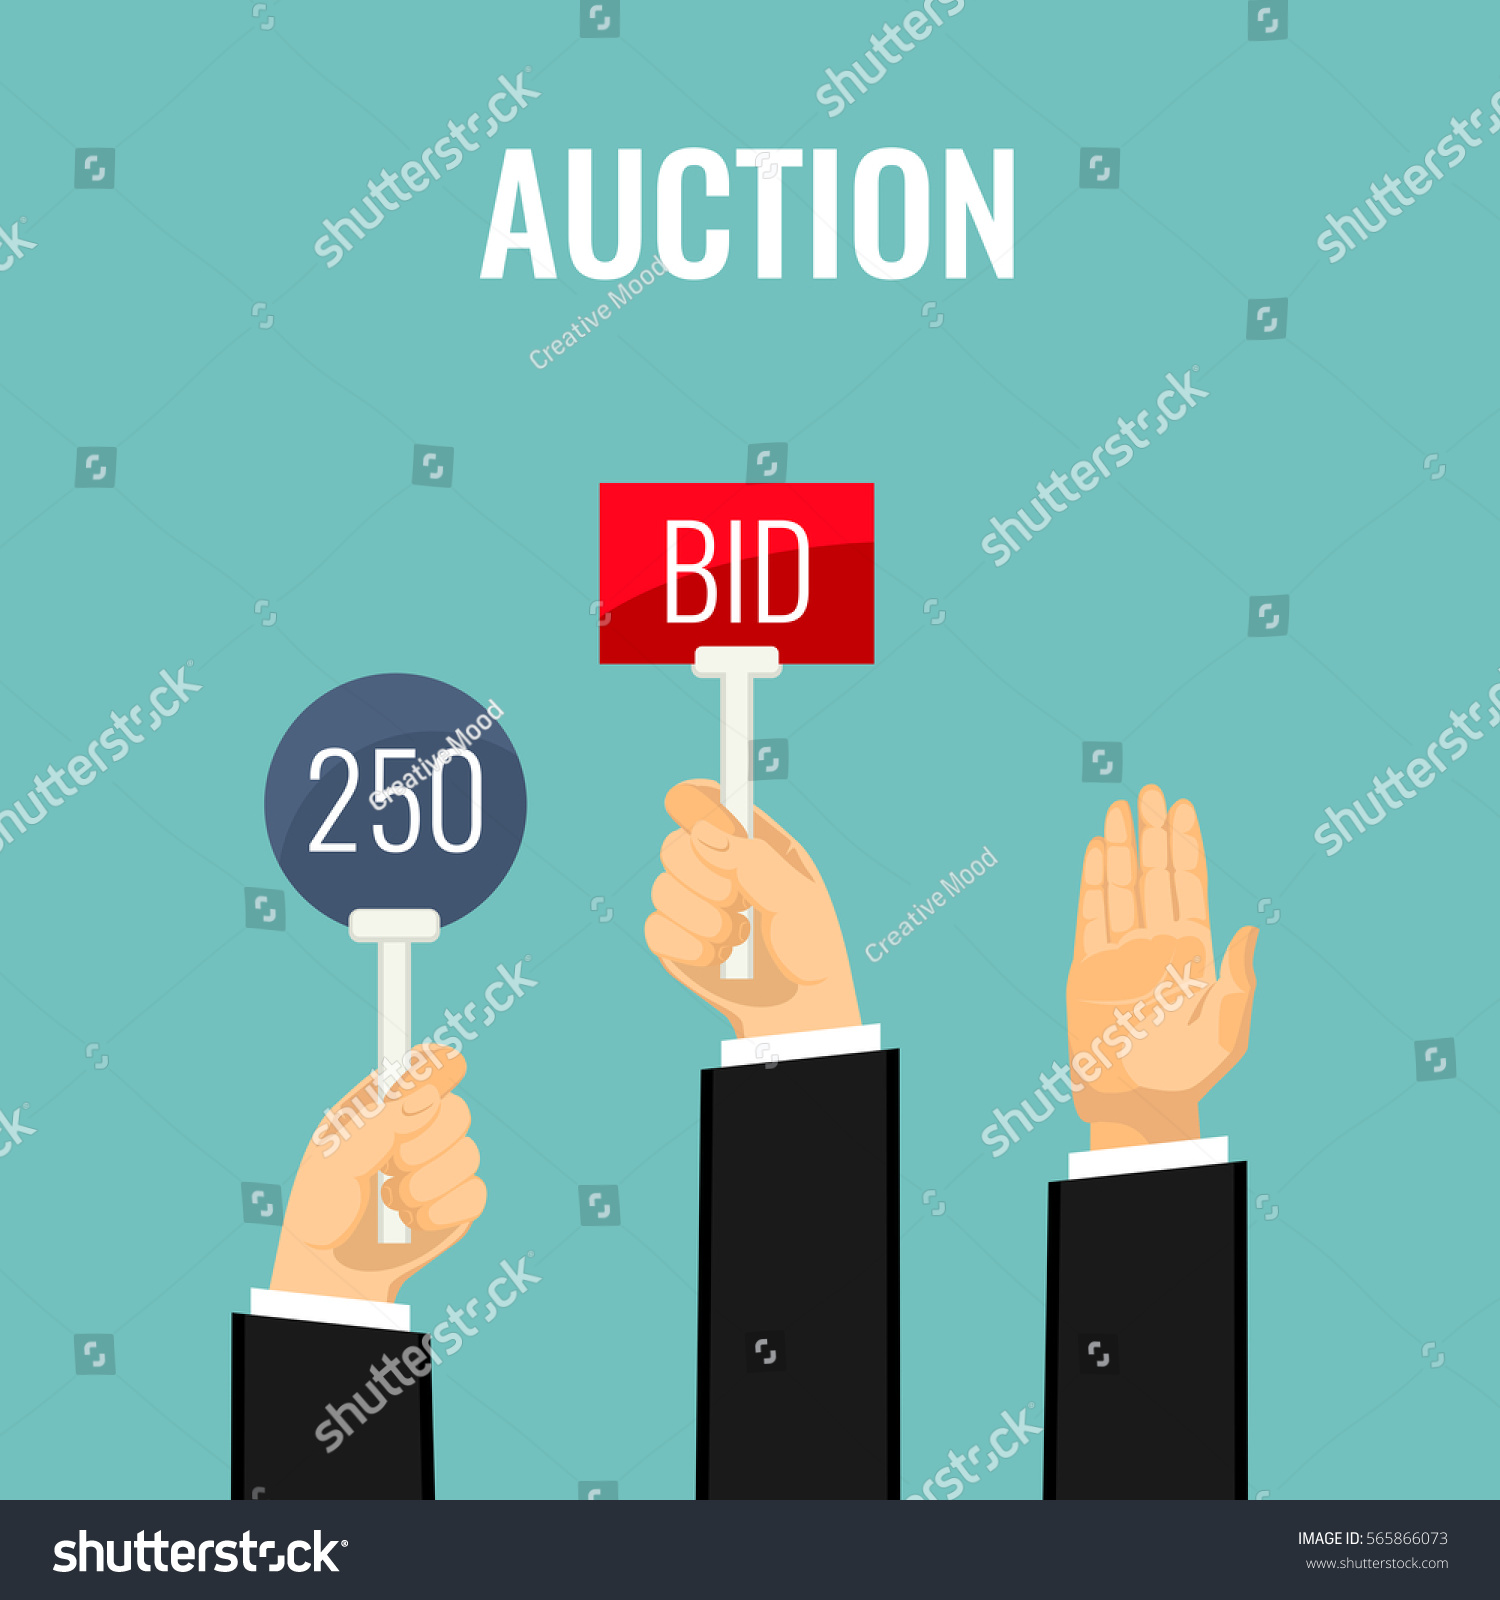 Auction Meeting Hands Holding Paddles Number Stock Vector ...